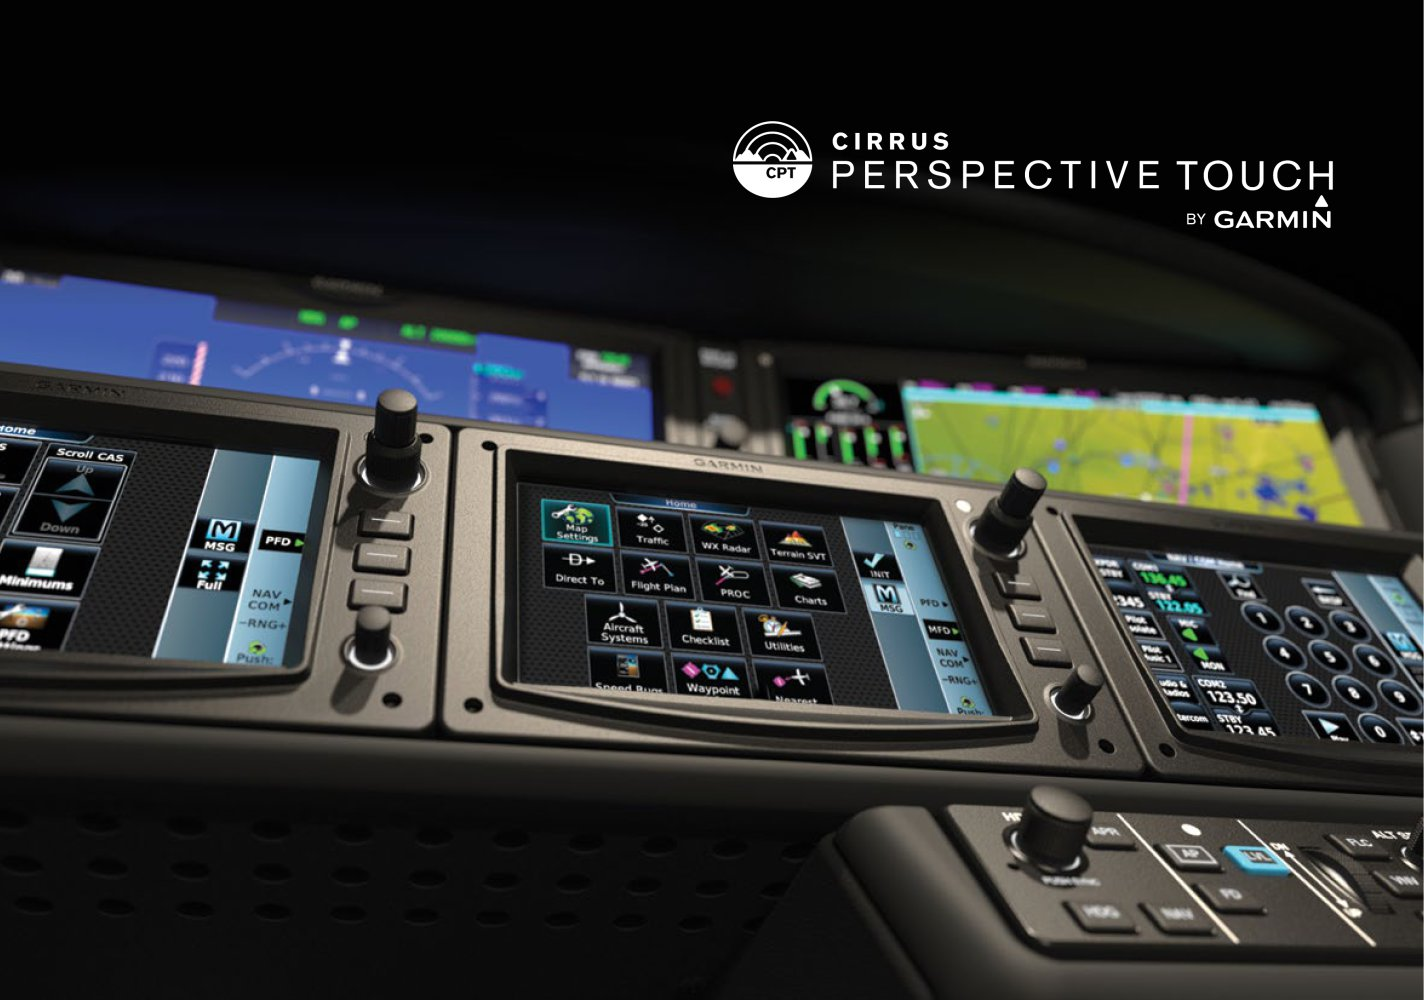 Cirrus Perspective Touch Brochure Low Res Aircraft Pdf Sr20 Wiring Diagram 1 19 Pages